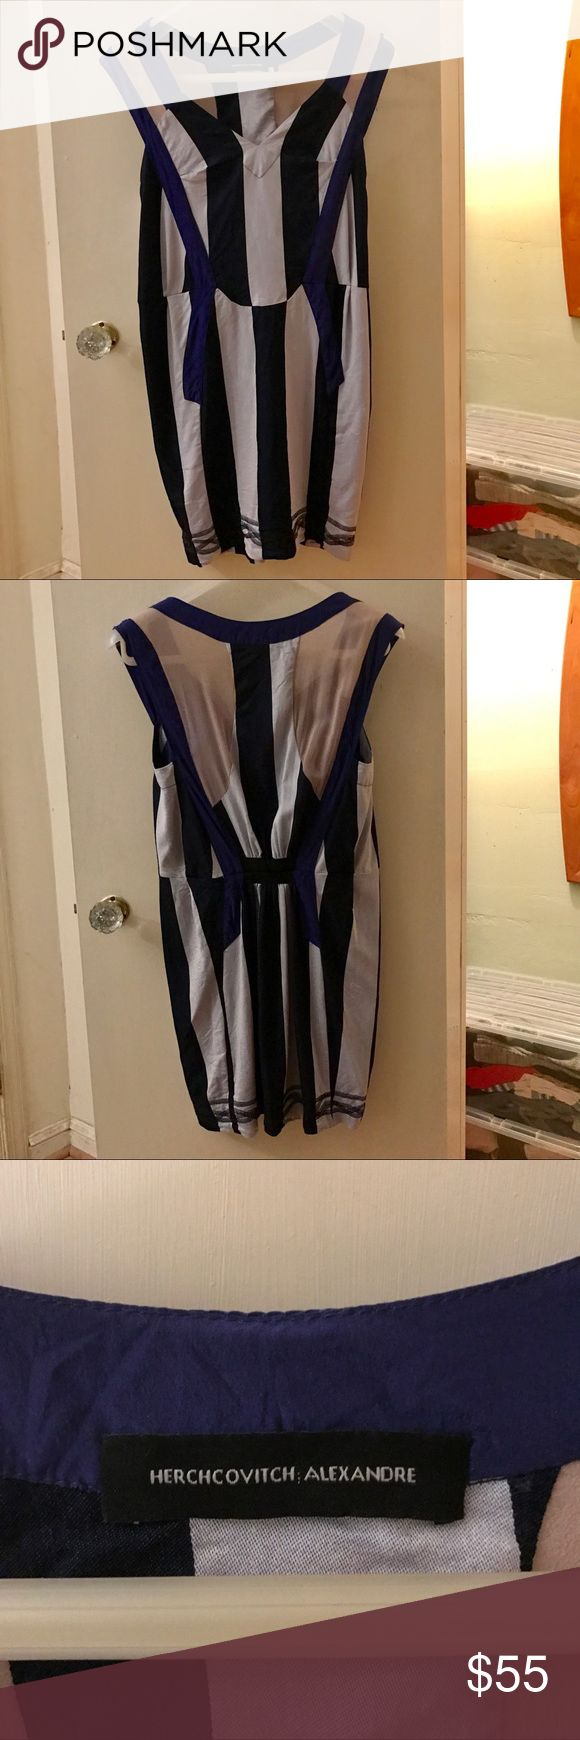 Alexandre Herchcovitch Striped Dress Alexandre Herchcovitch Striped Dress, indie designer, unique piece purchased at Opening Ceremony in NYC. Gently worn, great condition. Alexandre Herchcovitch Dresses